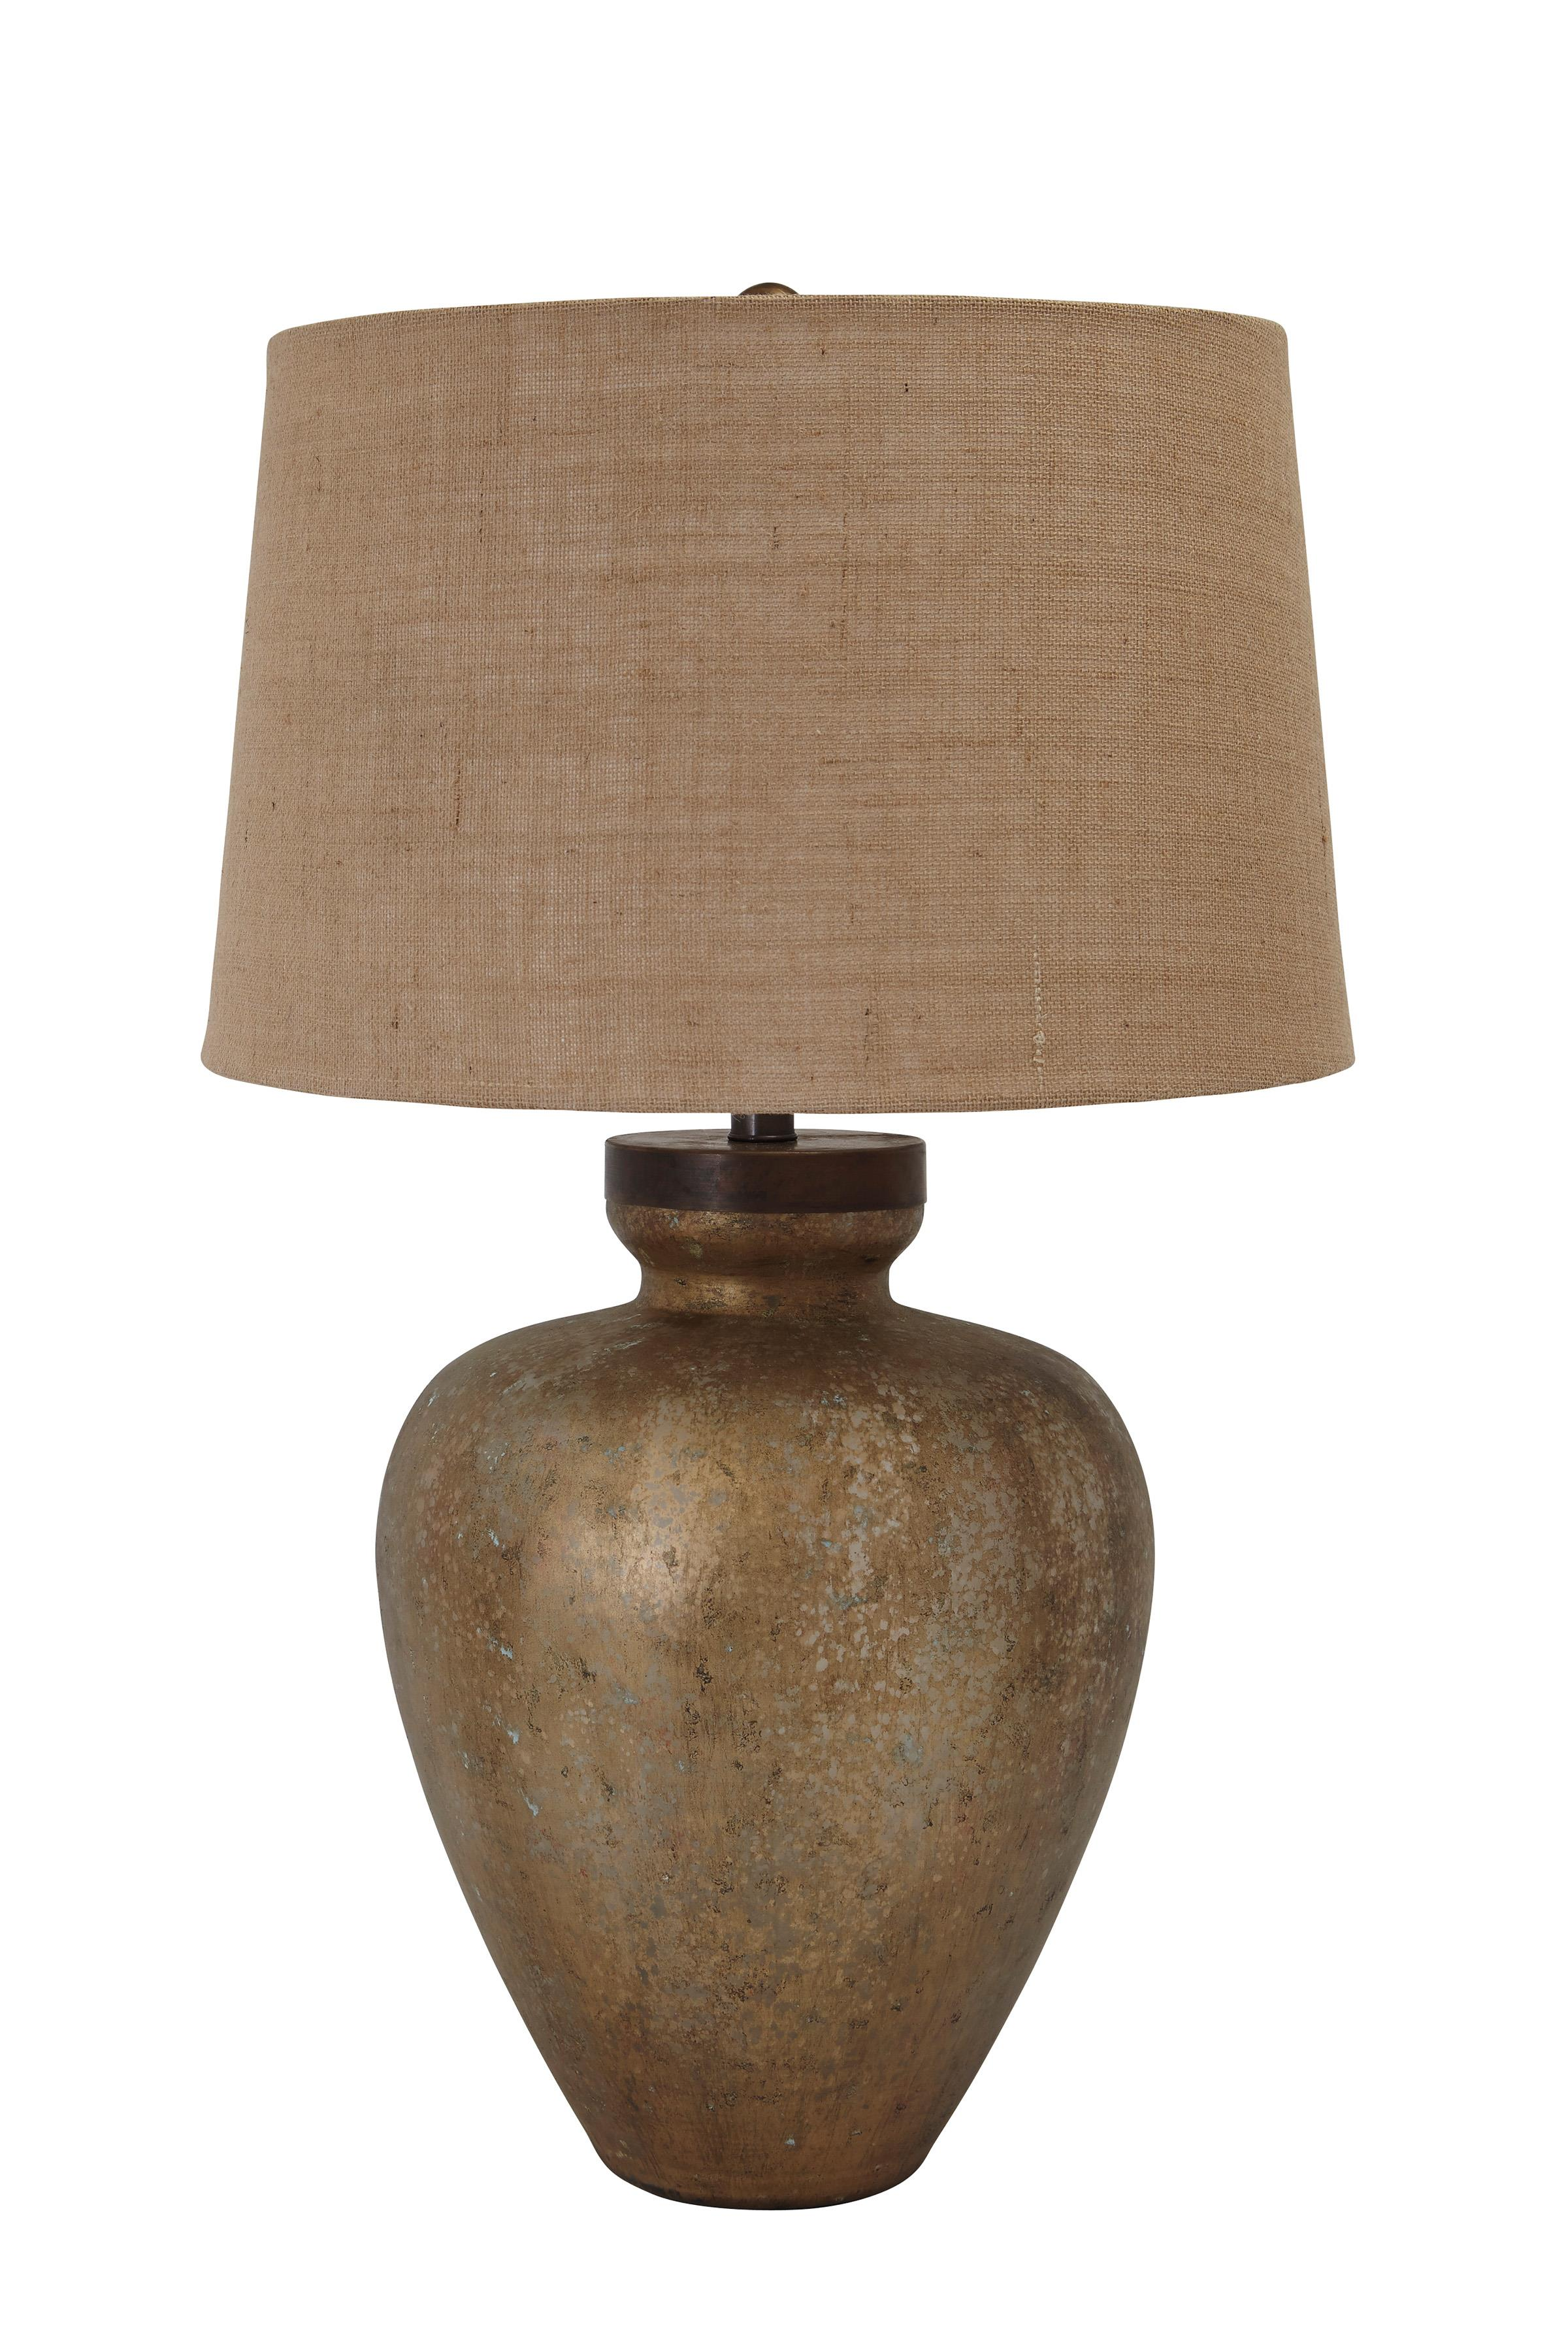 Signature Design by Ashley Lamps - Vintage Style Shaunelle Gold Finish Glass Table Lamp - Item Number: L430194